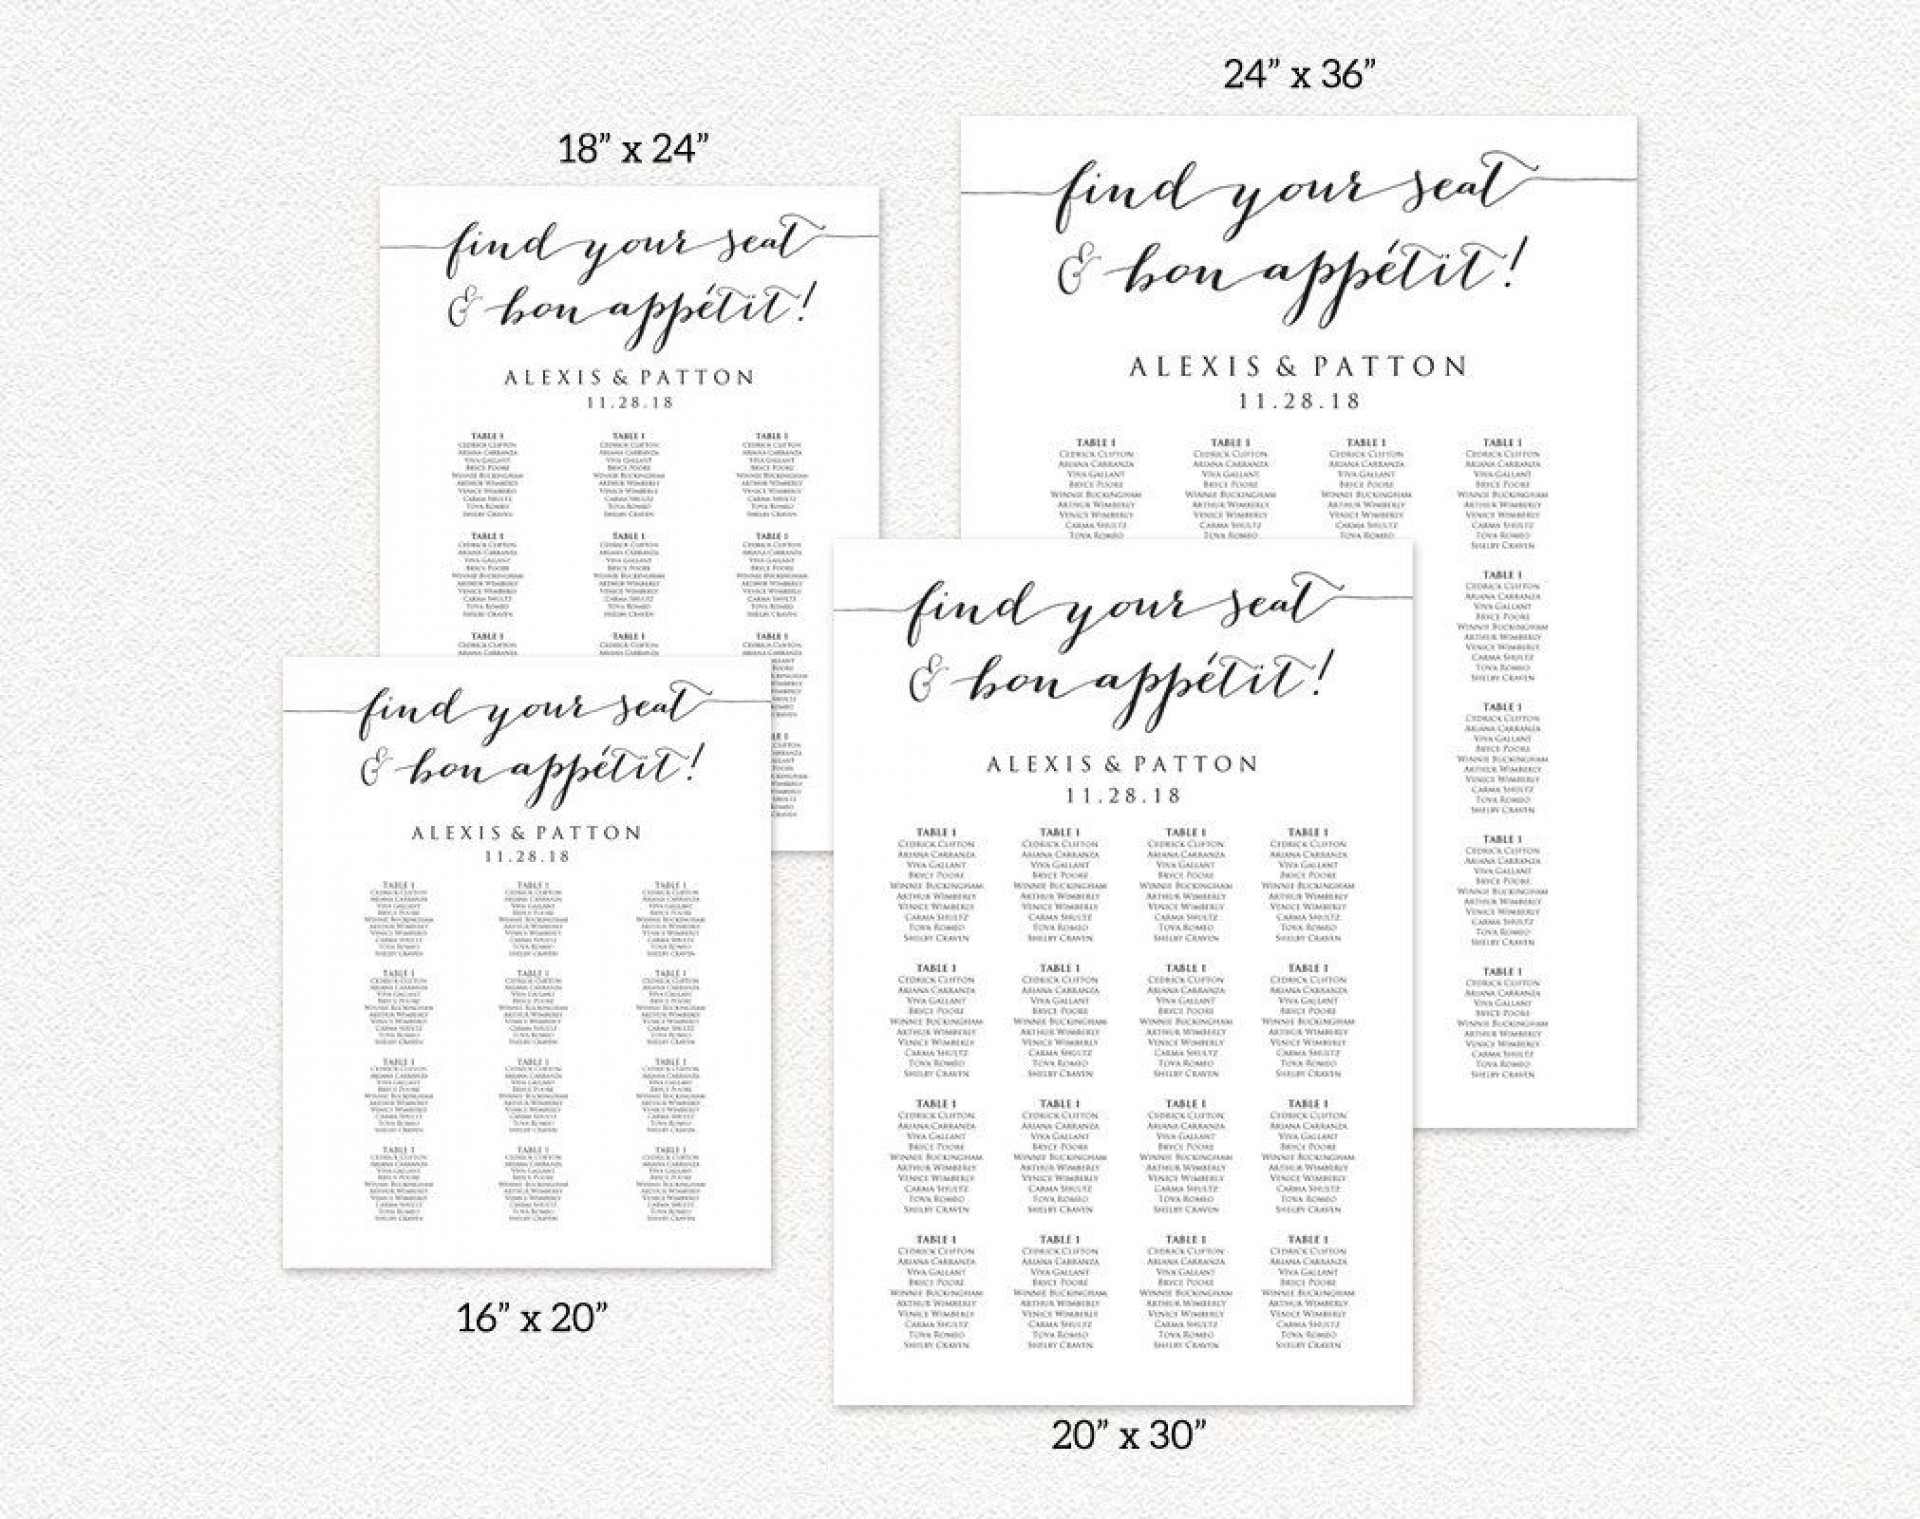 008 Formidable Seating Chart Wedding Template Idea  Table Excel Printable Reception Free1920